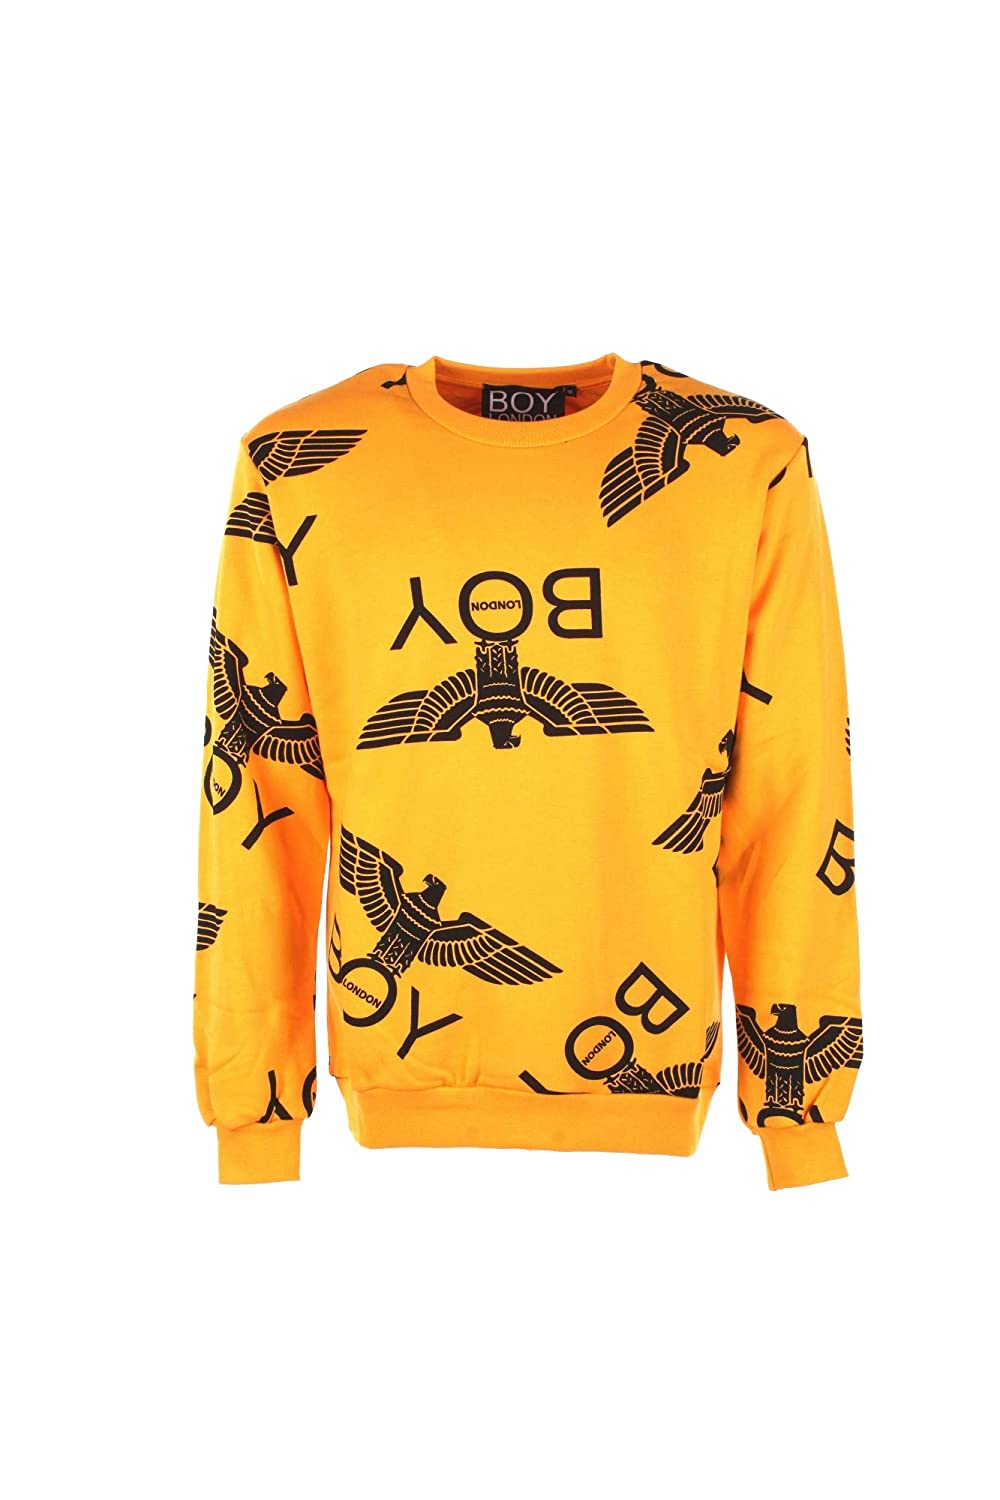 Boy London Felpa  Herren 2XL Giallo Blu5018 Autunno Inverno 2018 19